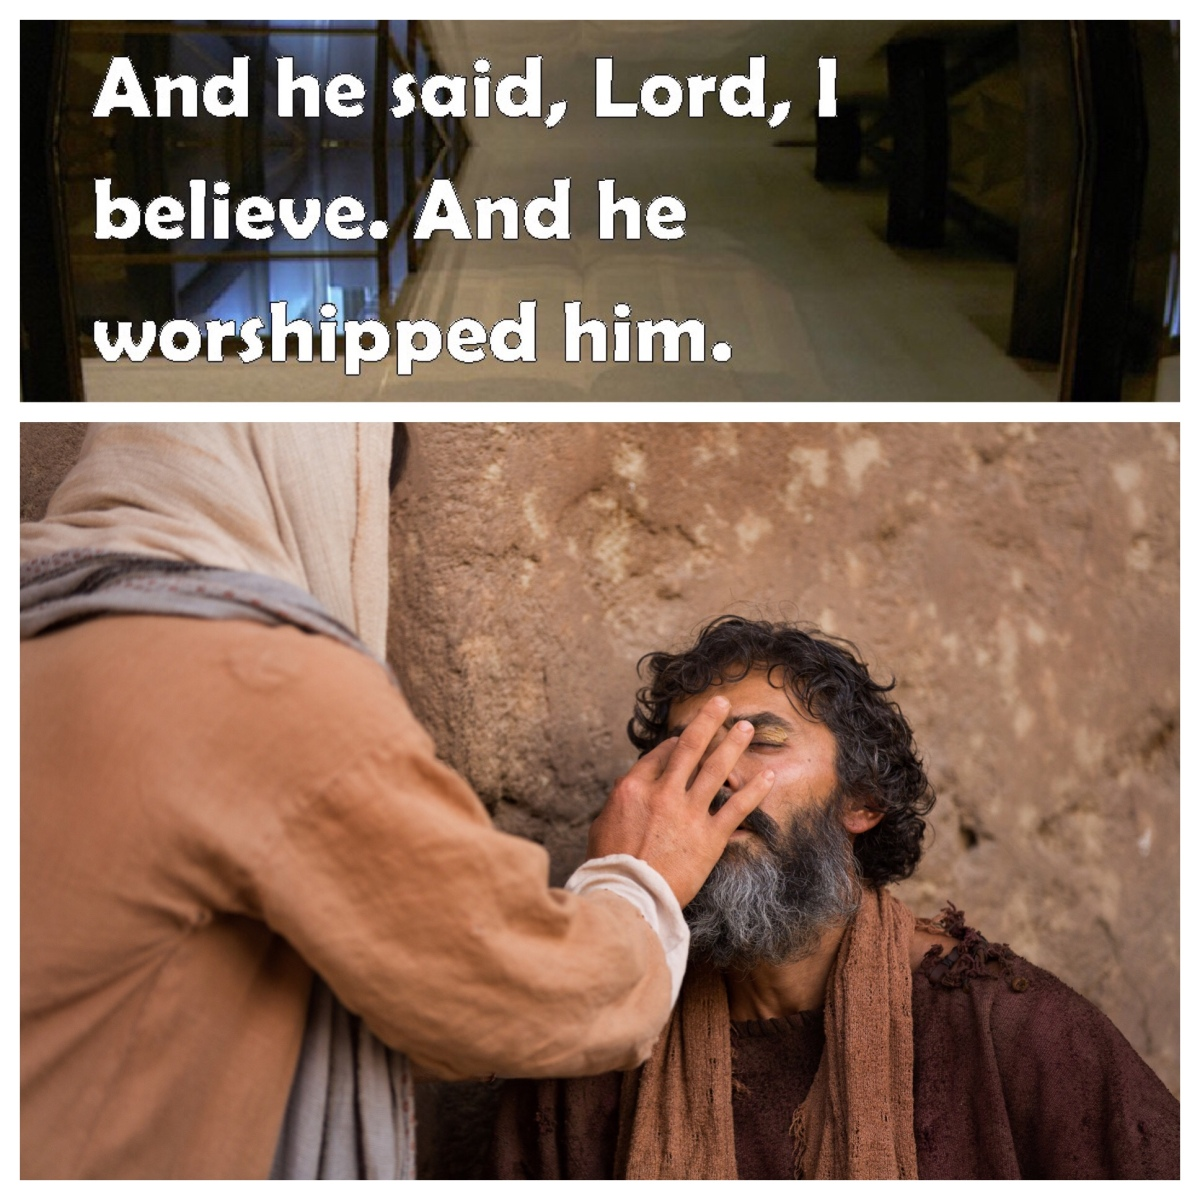 In the most unlikely company: confessing faith in Jesus (John 9)